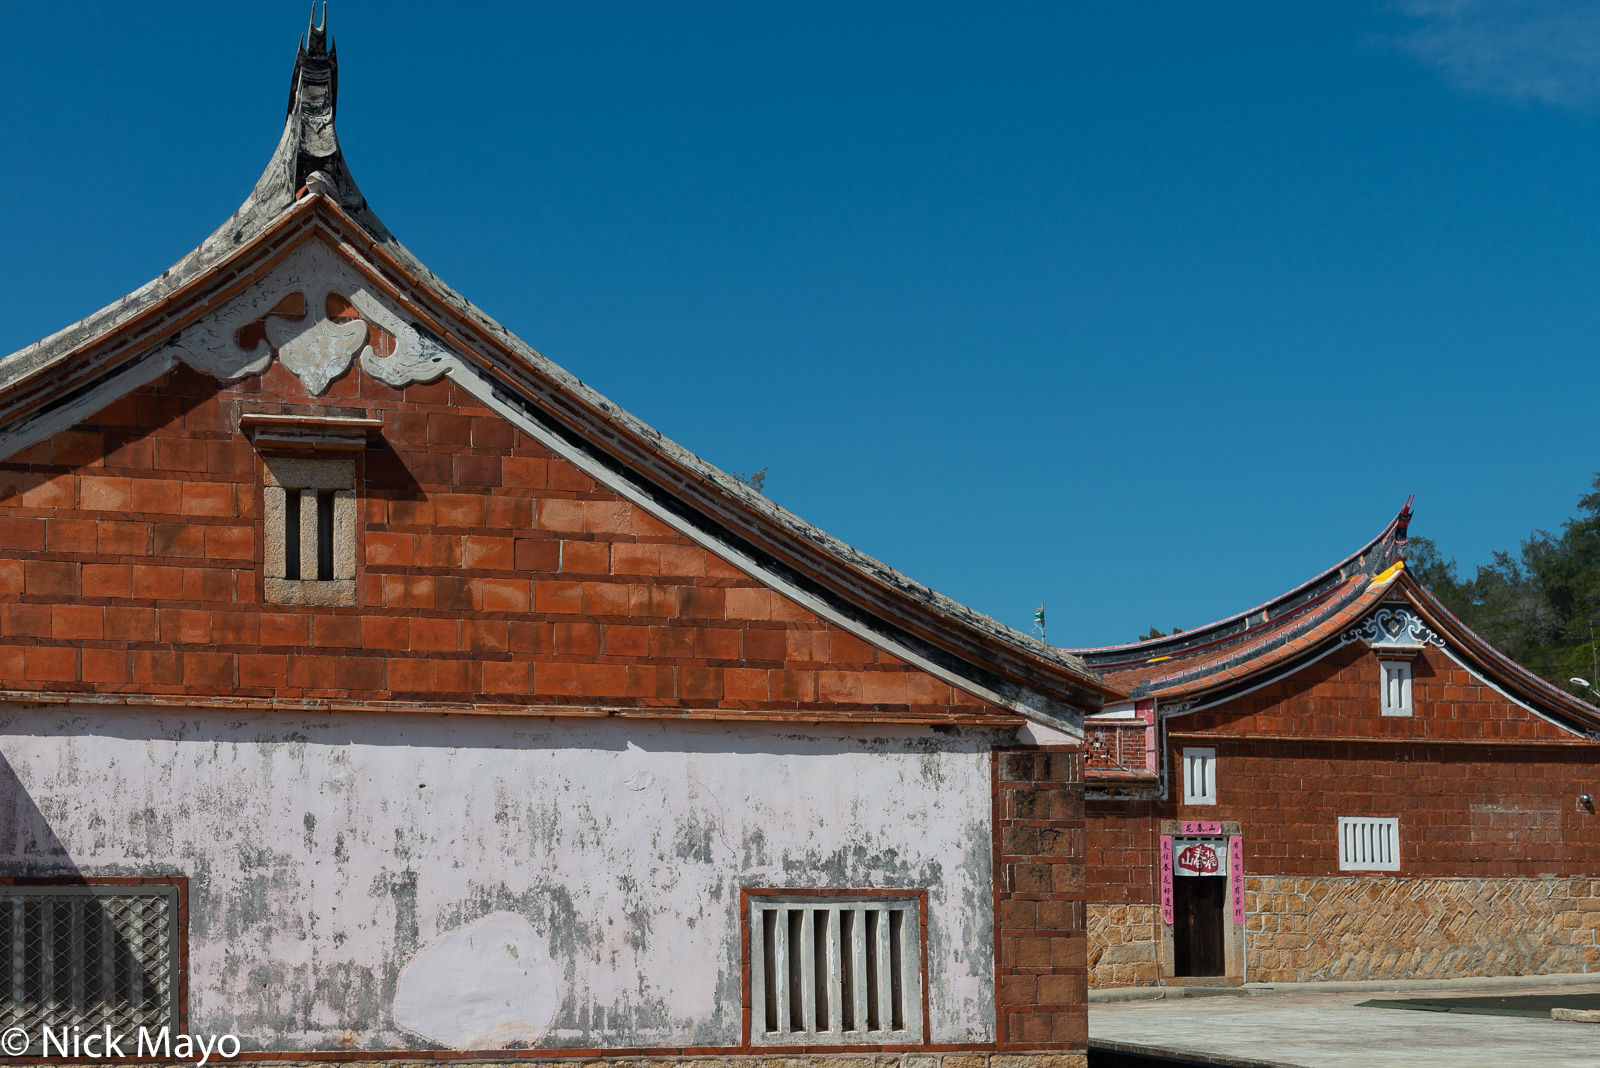 Traditional Minnan houses with their distinctive roofs in Xiaojing village on Kinmen.